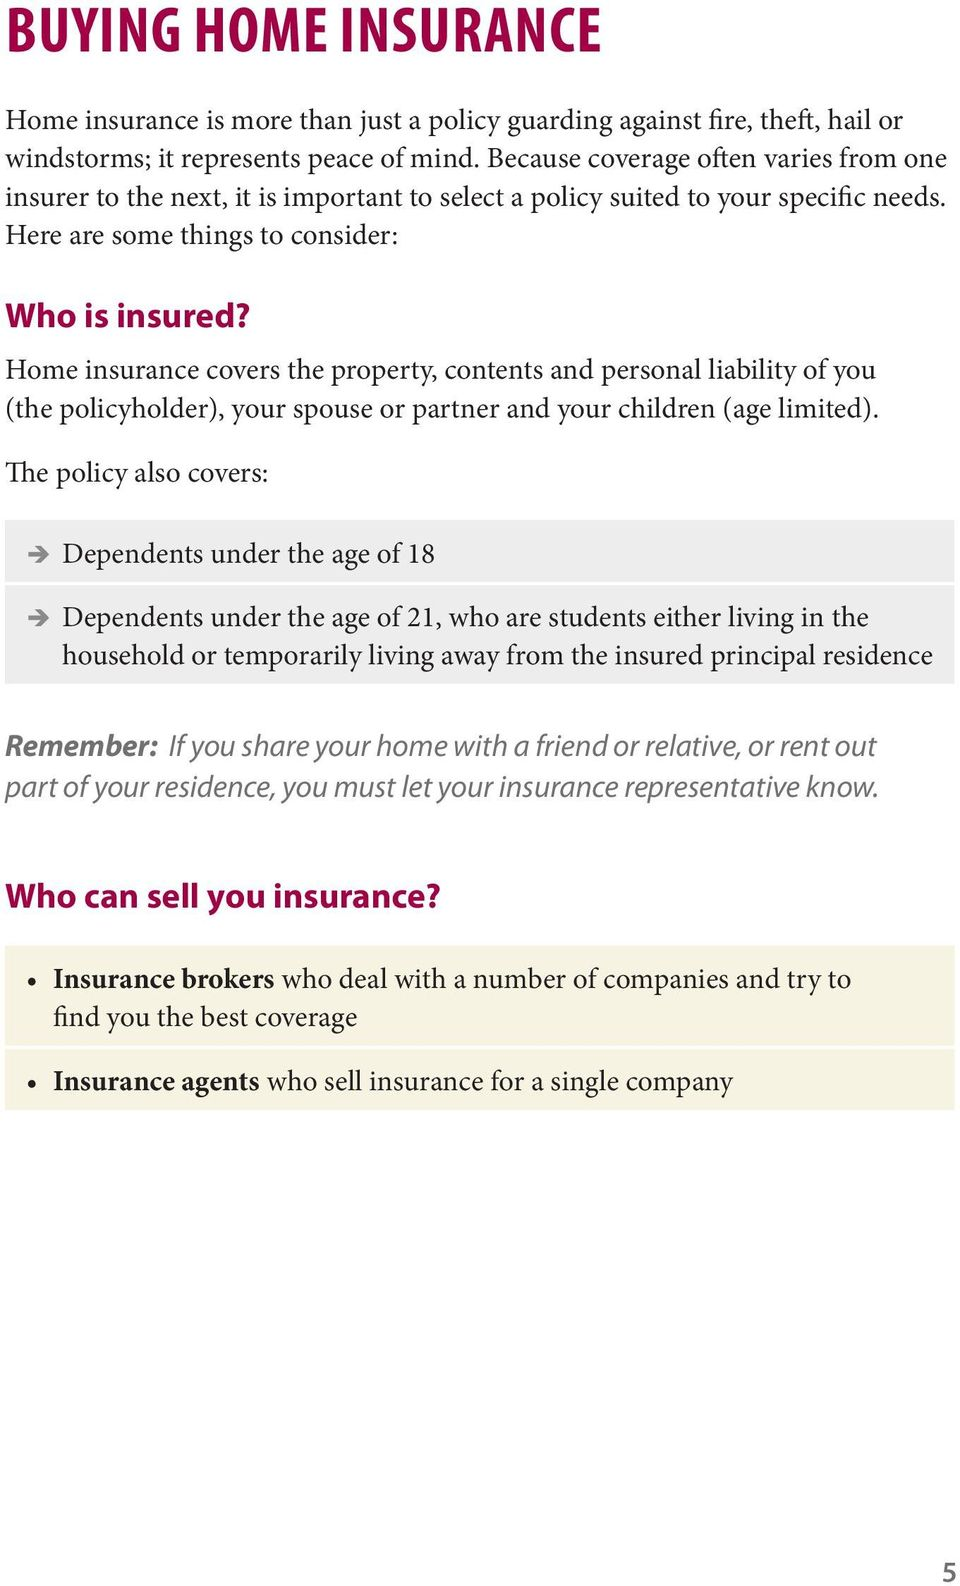 Home insurance covers the property, contents and personal liability of you (the policyholder), your spouse or partner and your children (age limited).